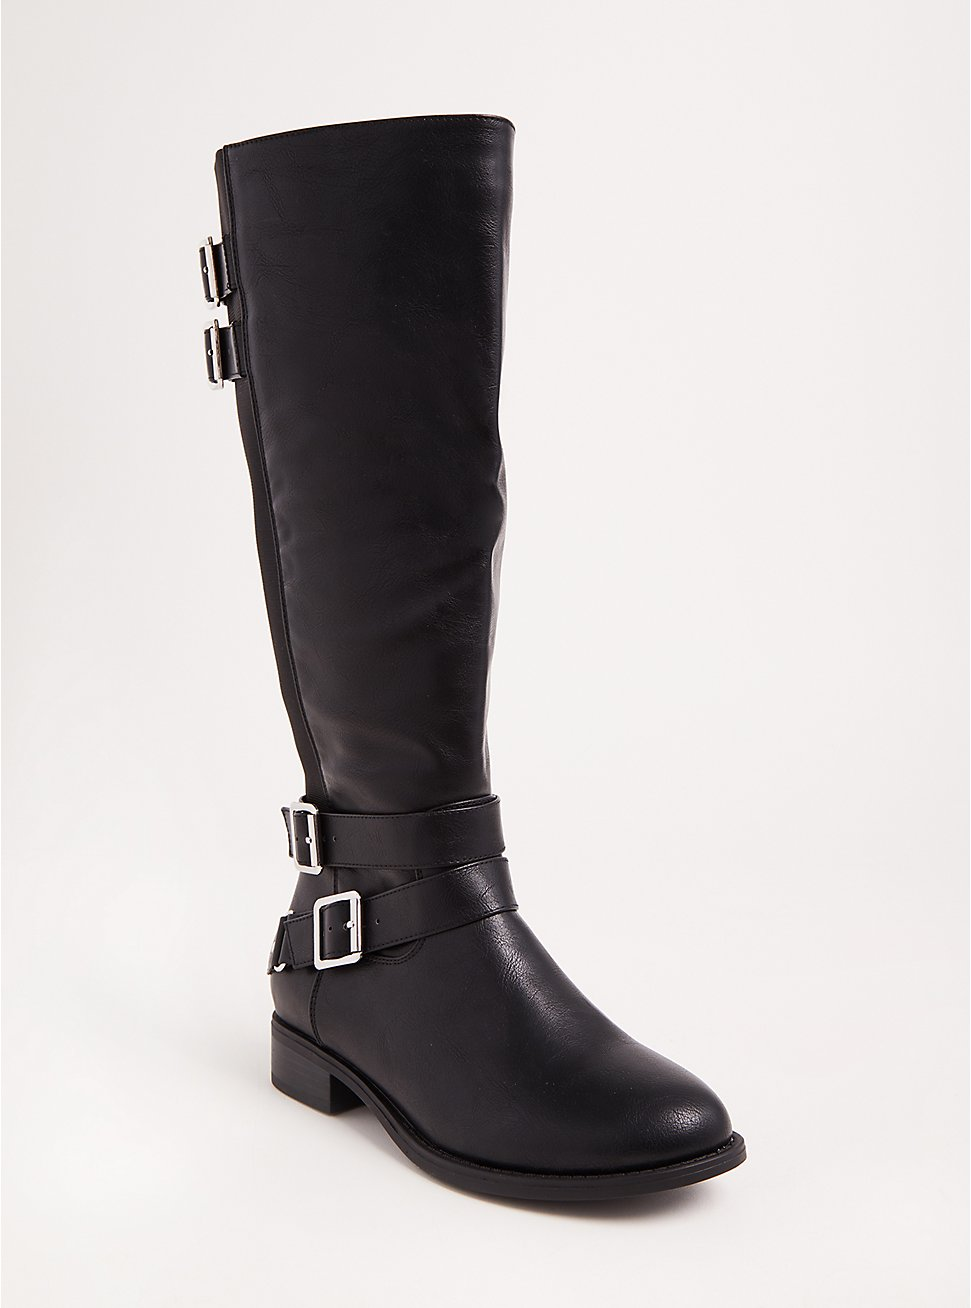 Black Faux Leather Tall Boots (WW & Wide To Extra Wide Calf), BLACK, hi-res